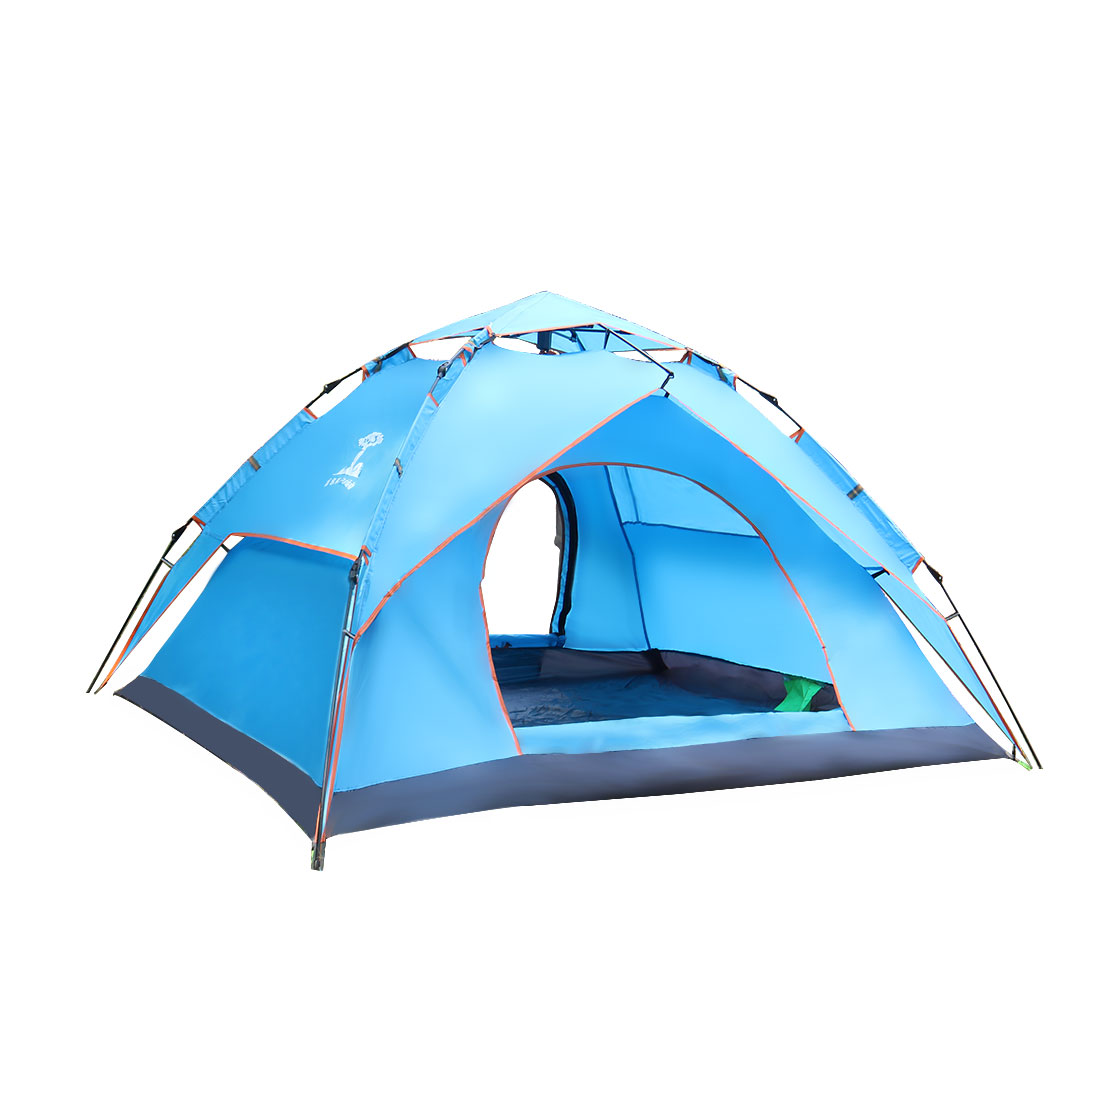 Double Layer Sun Shelter Water Resistant Pop Up Automatic Tent 3-4 Person Blue